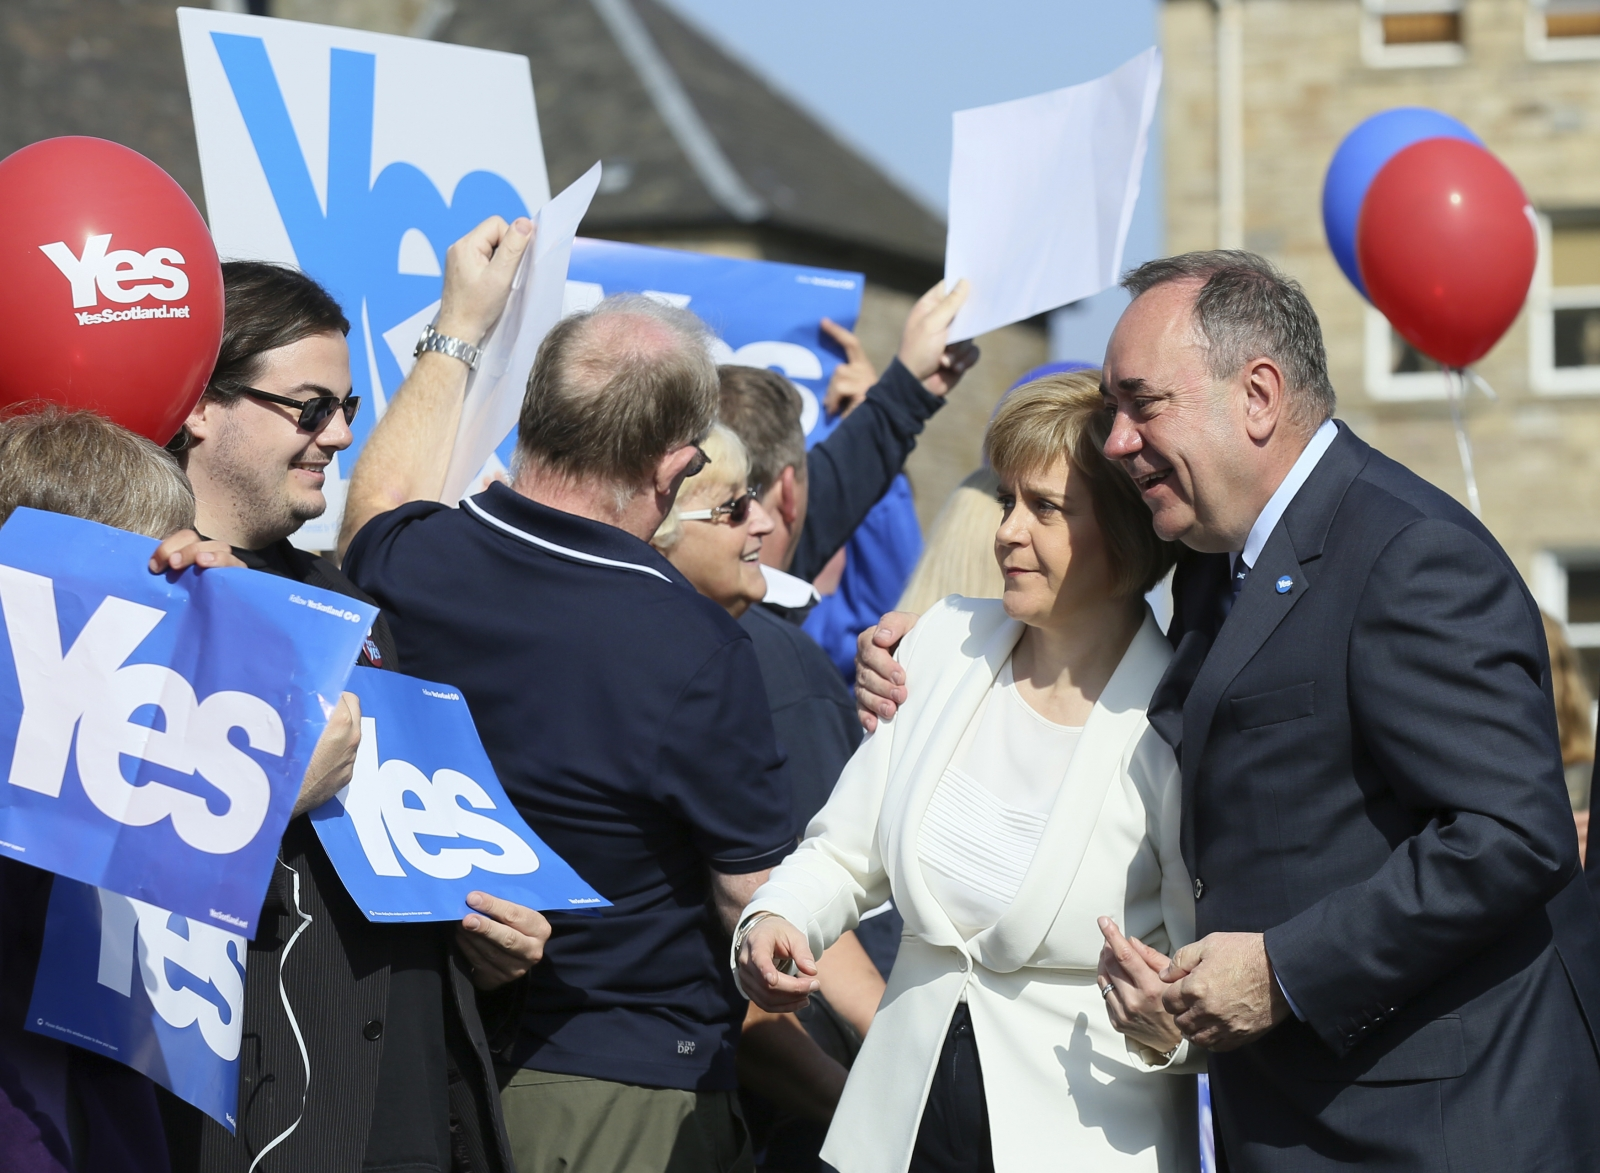 Scotland's First Minister Alex Salmond (R) and deputy First Minister Nicola Sturgeon pose for a photograph as they campaign in Edinburgh, Scotland September 10, 2014.